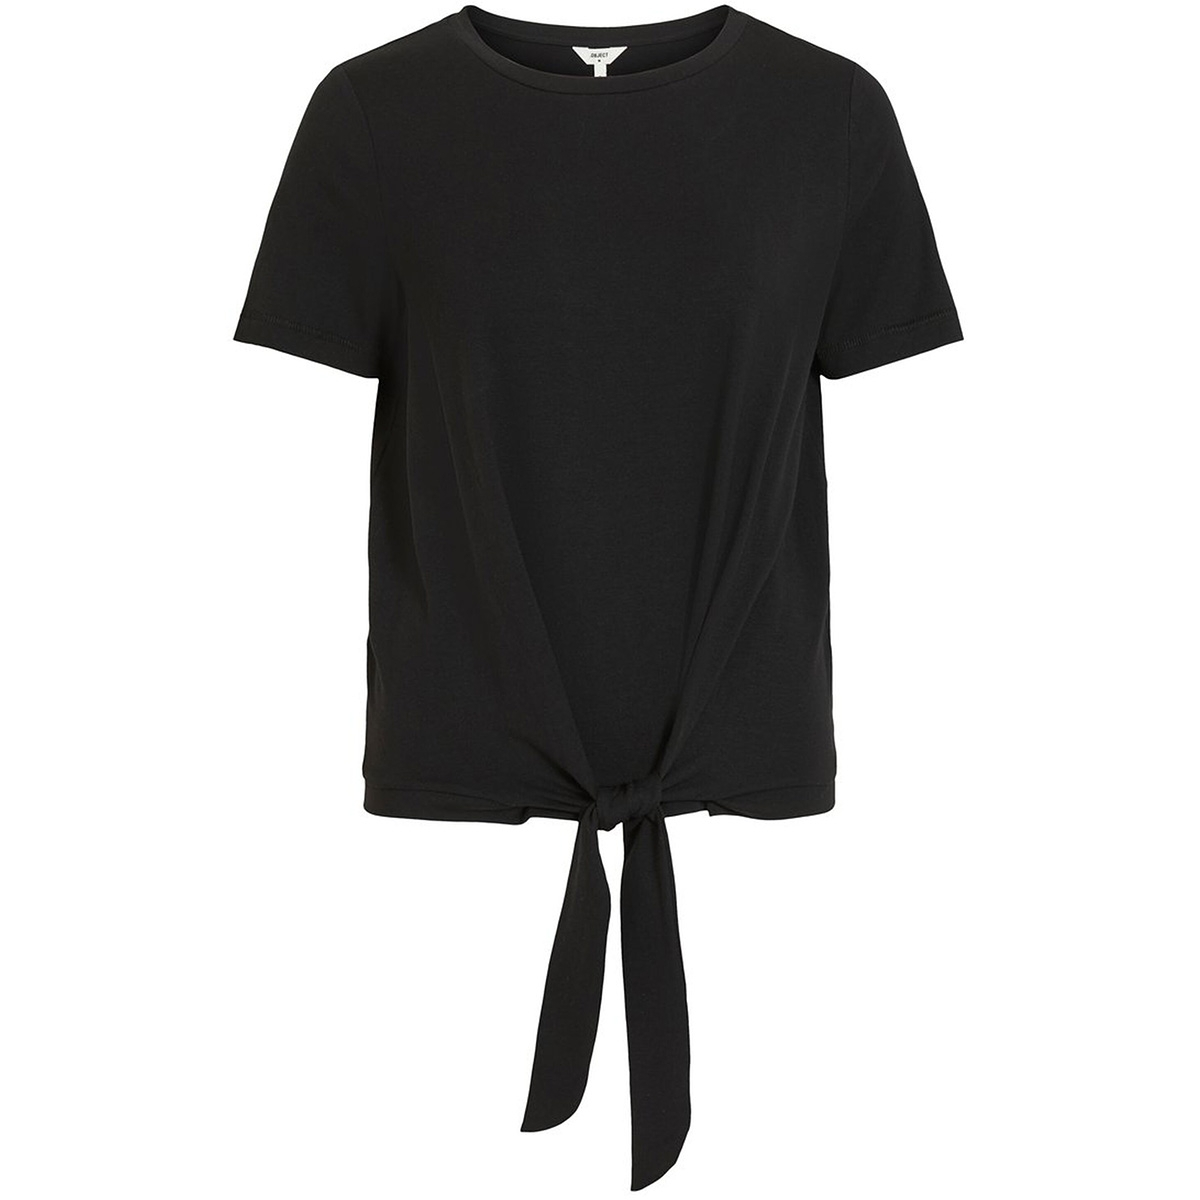 objstephanie maxwell s/s top noos 23029269 object t-shirt black